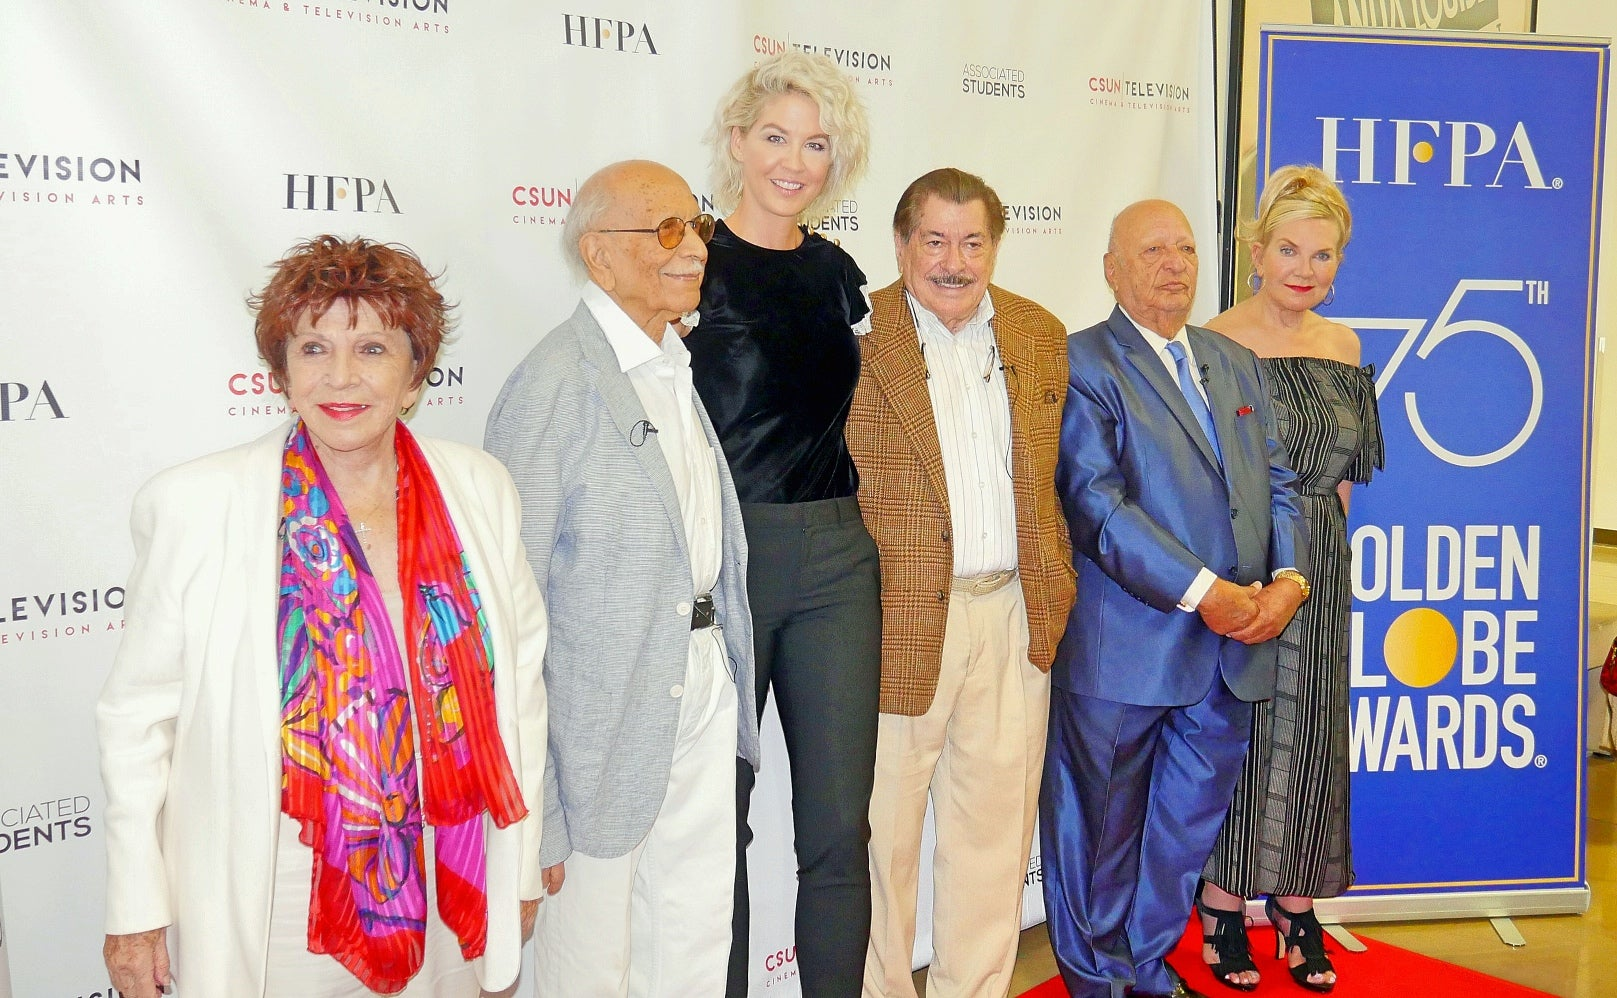 Senior members of the HFPA and Jenna Elfman at CSUN